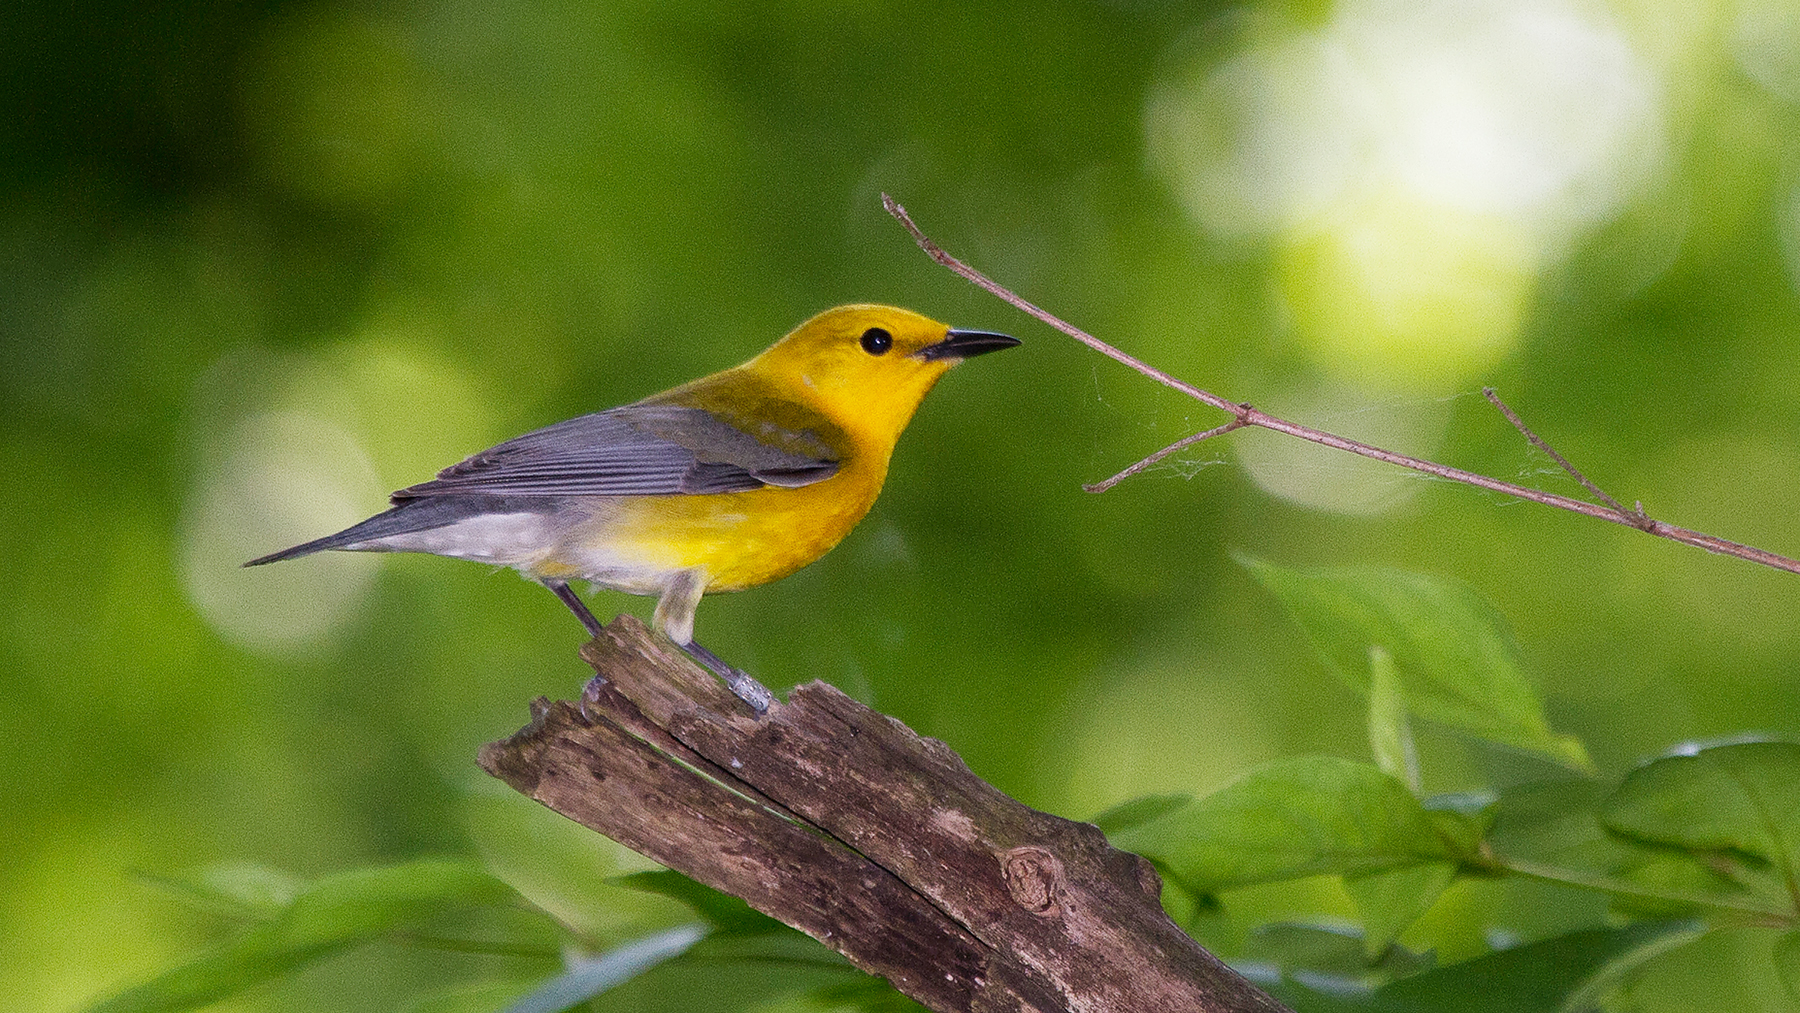 Female prothonotary warbler. Photo by Michael Jeffords